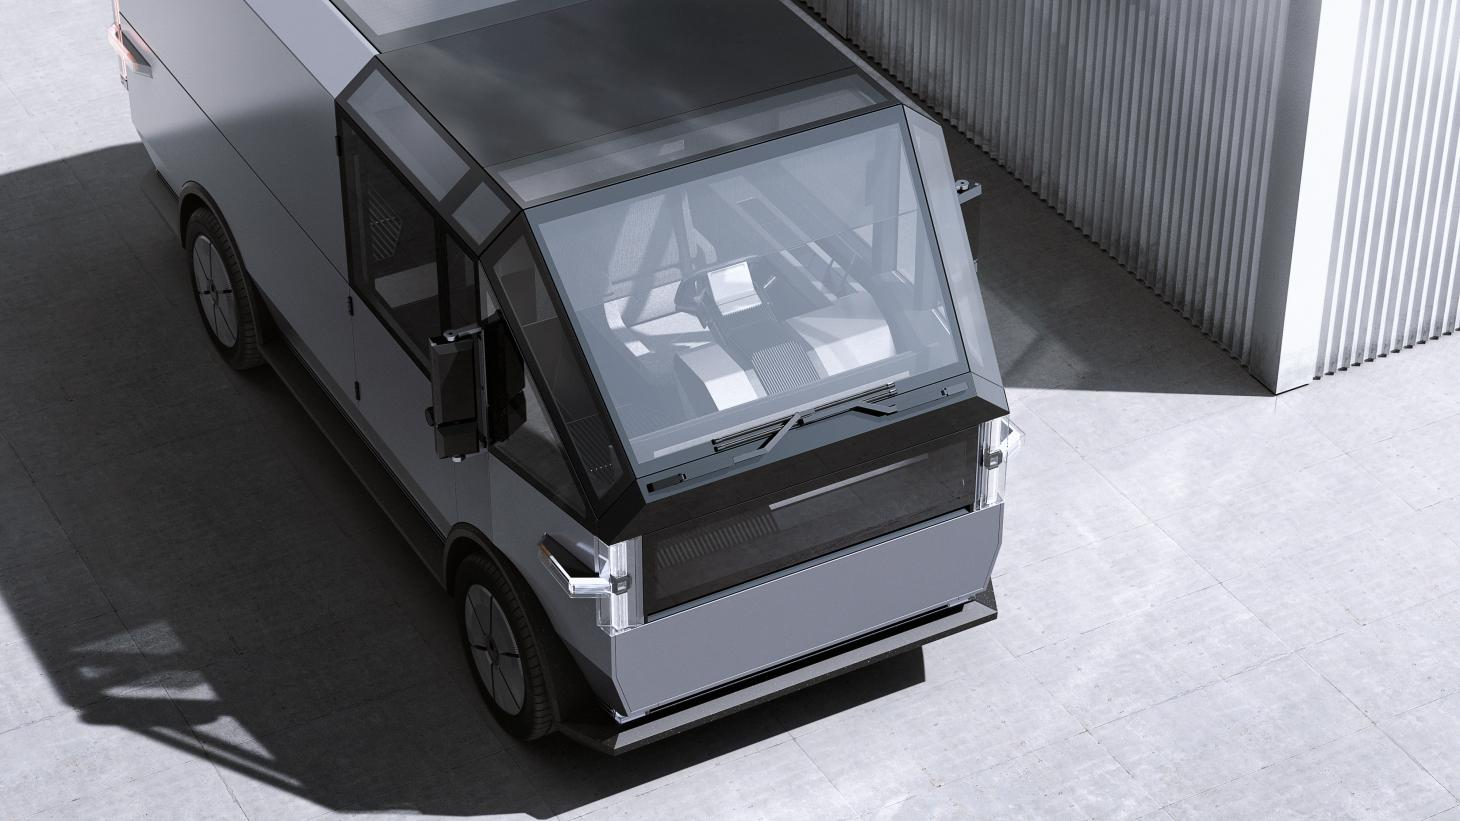 Canoo's new MPDV (Multi-Purpose Delivery Vehicle) as seen from above